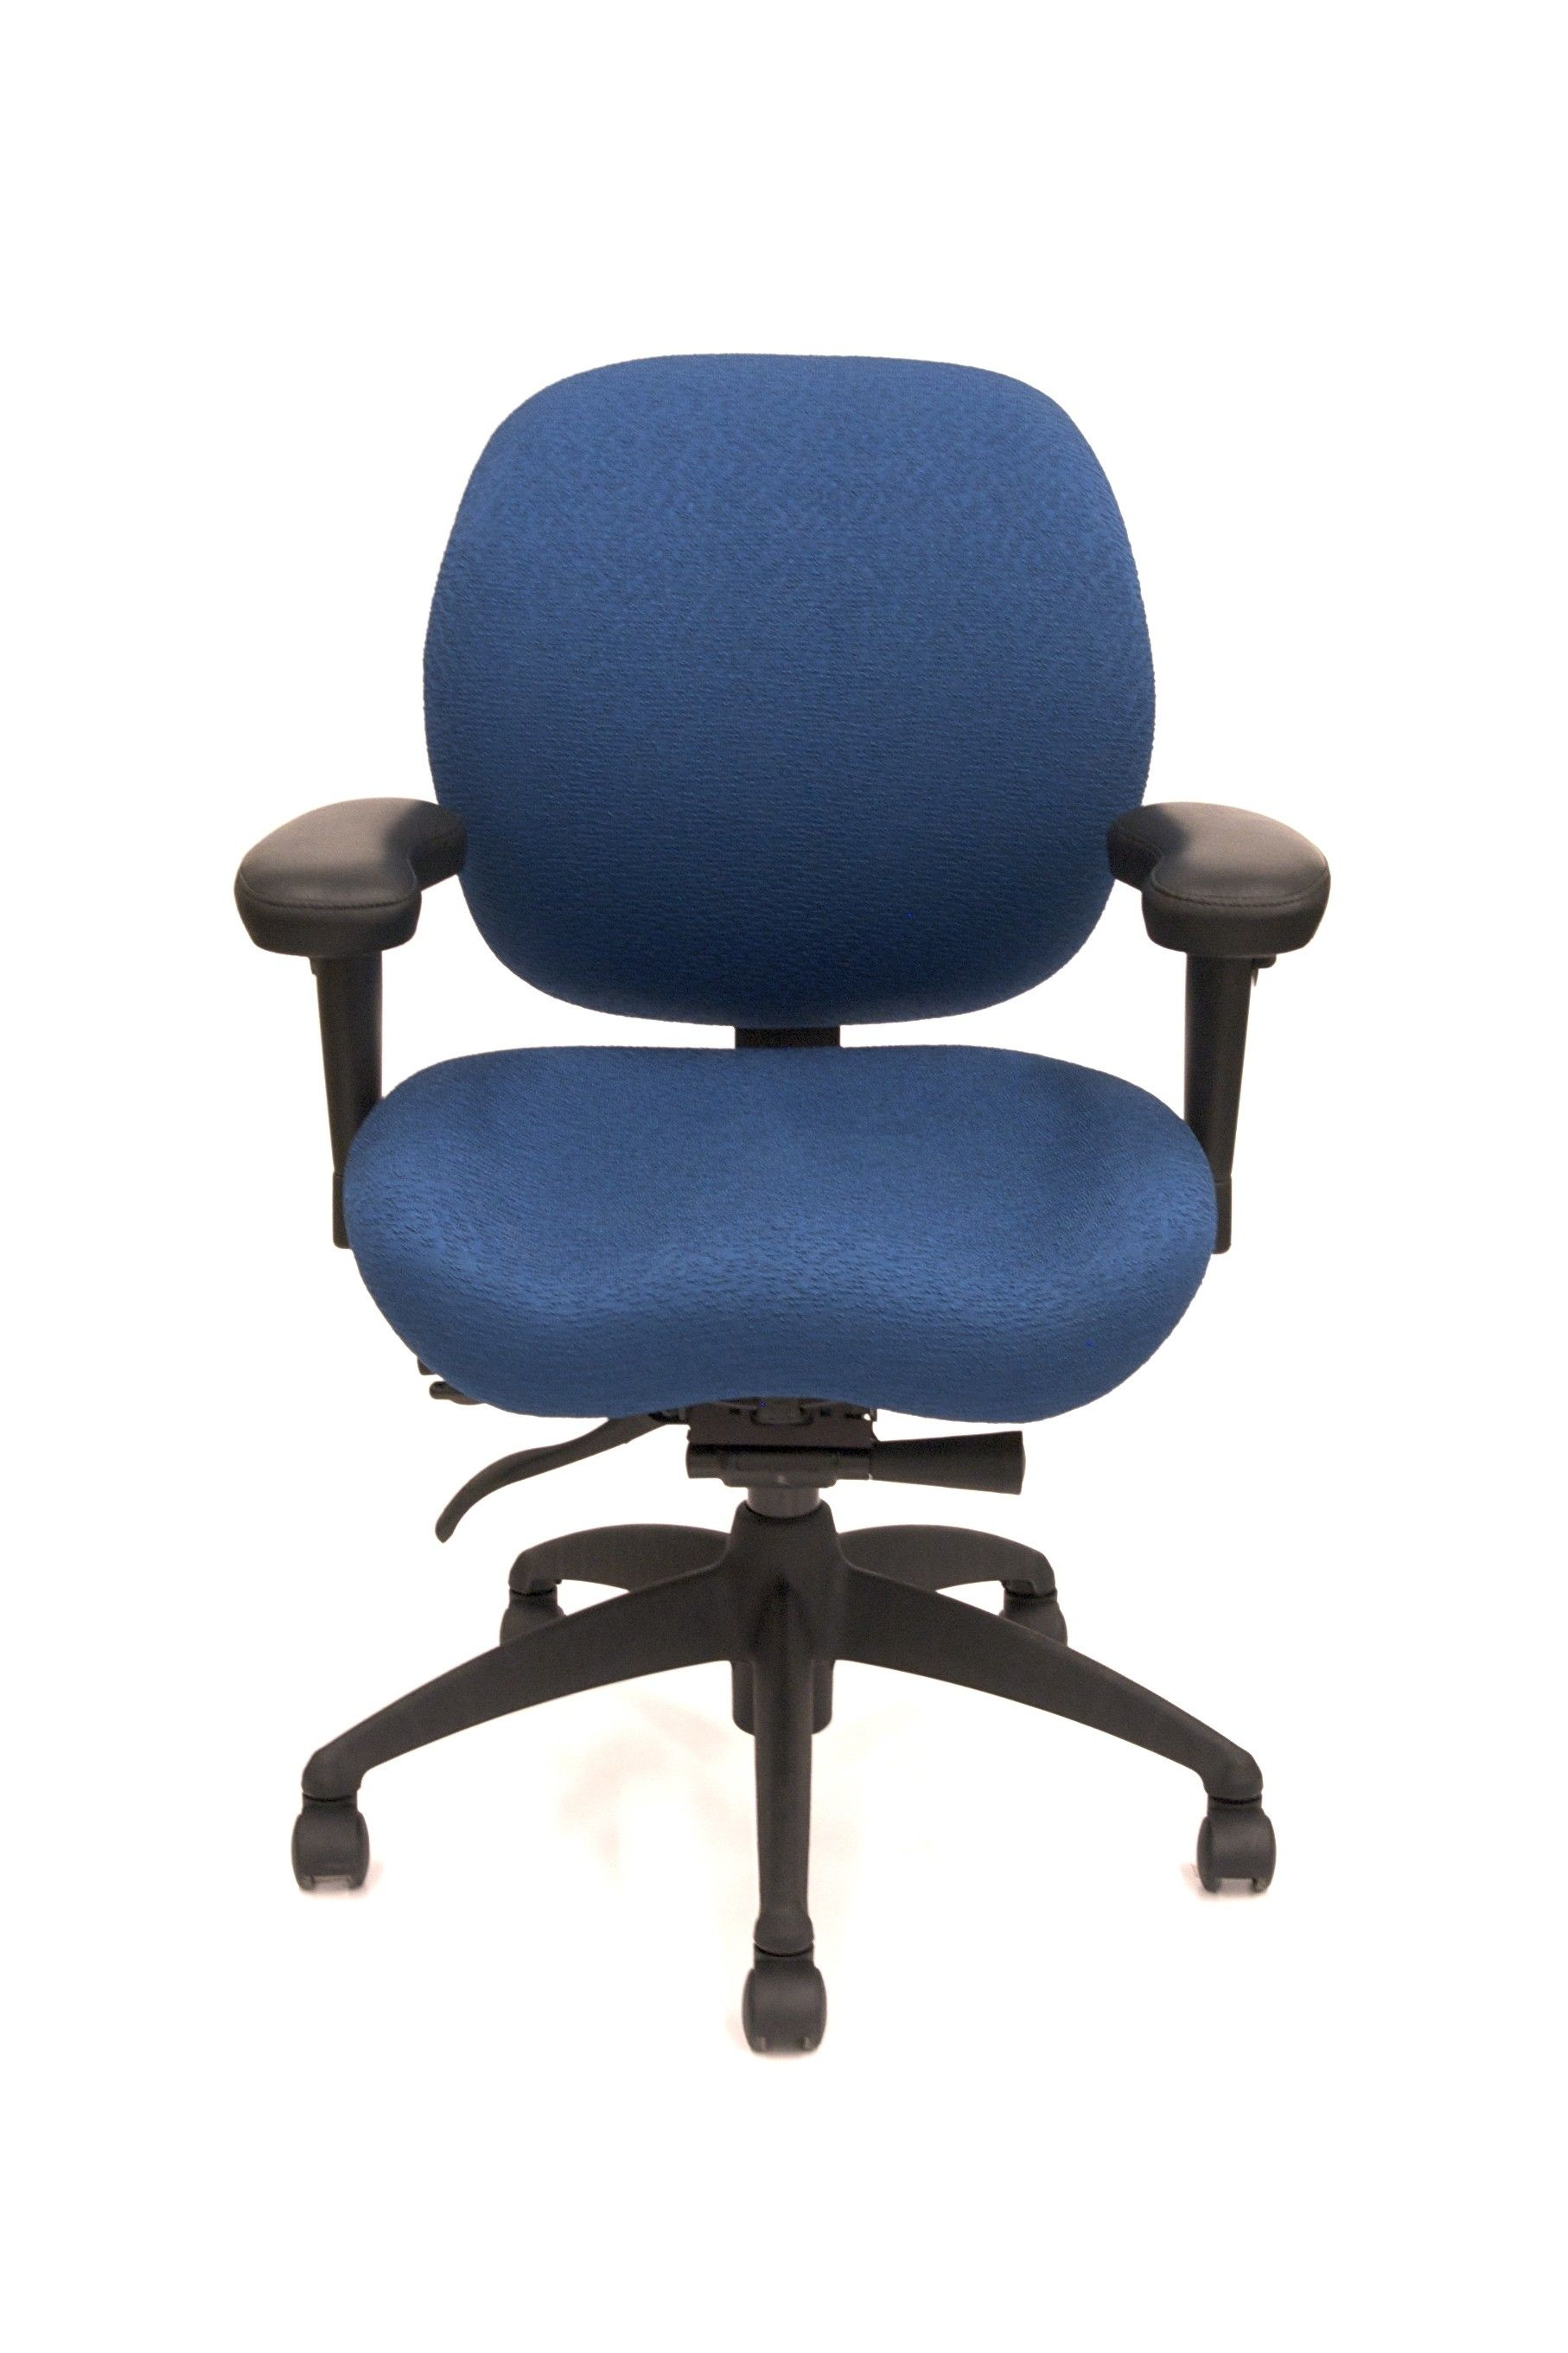 office chair. Lifeform® Management Grand Office Chair $995 I Sat In It, VERY Comfortable.